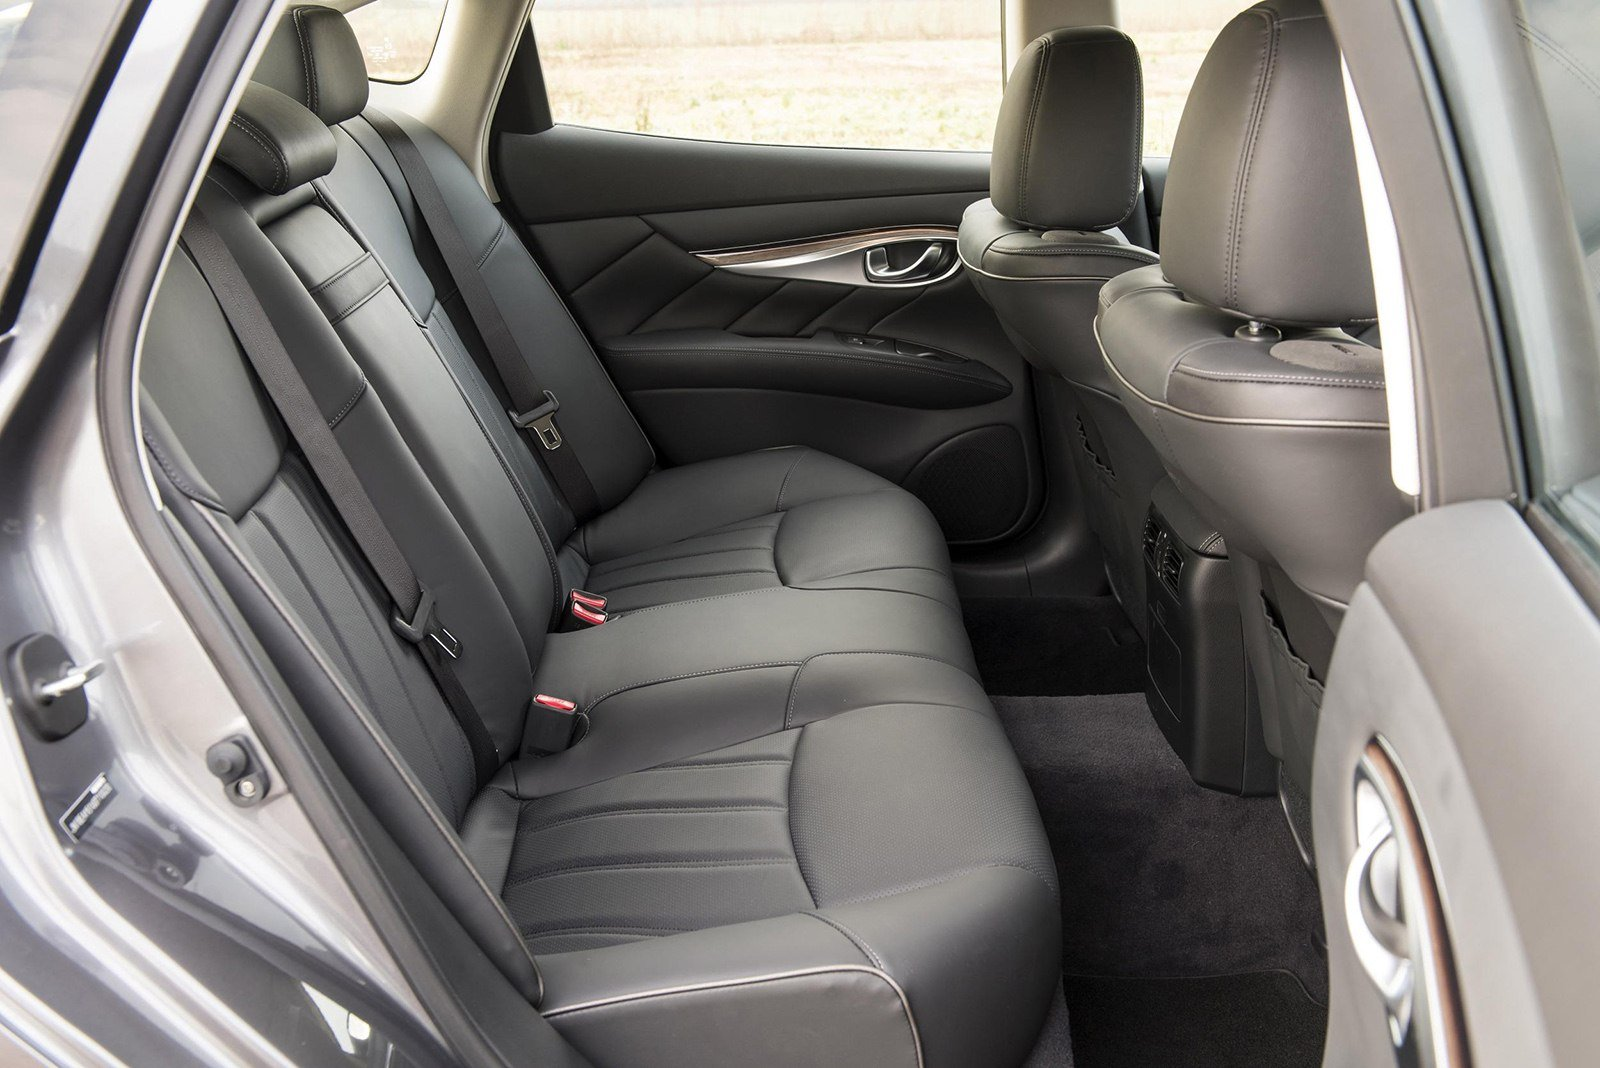 Infiniti Q70 Rear Seating